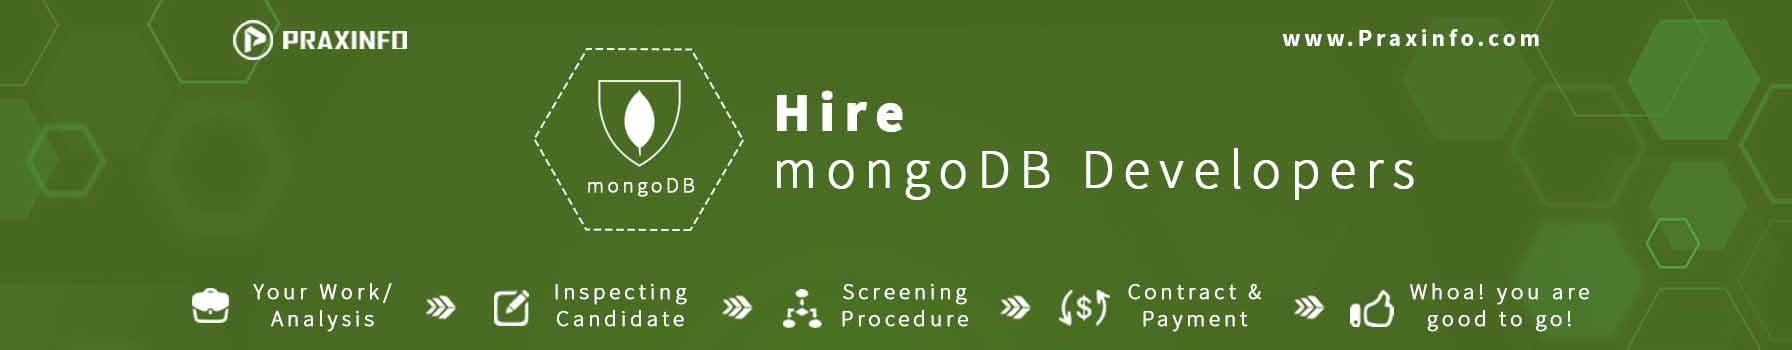 hire-mongodb-developer.jpg